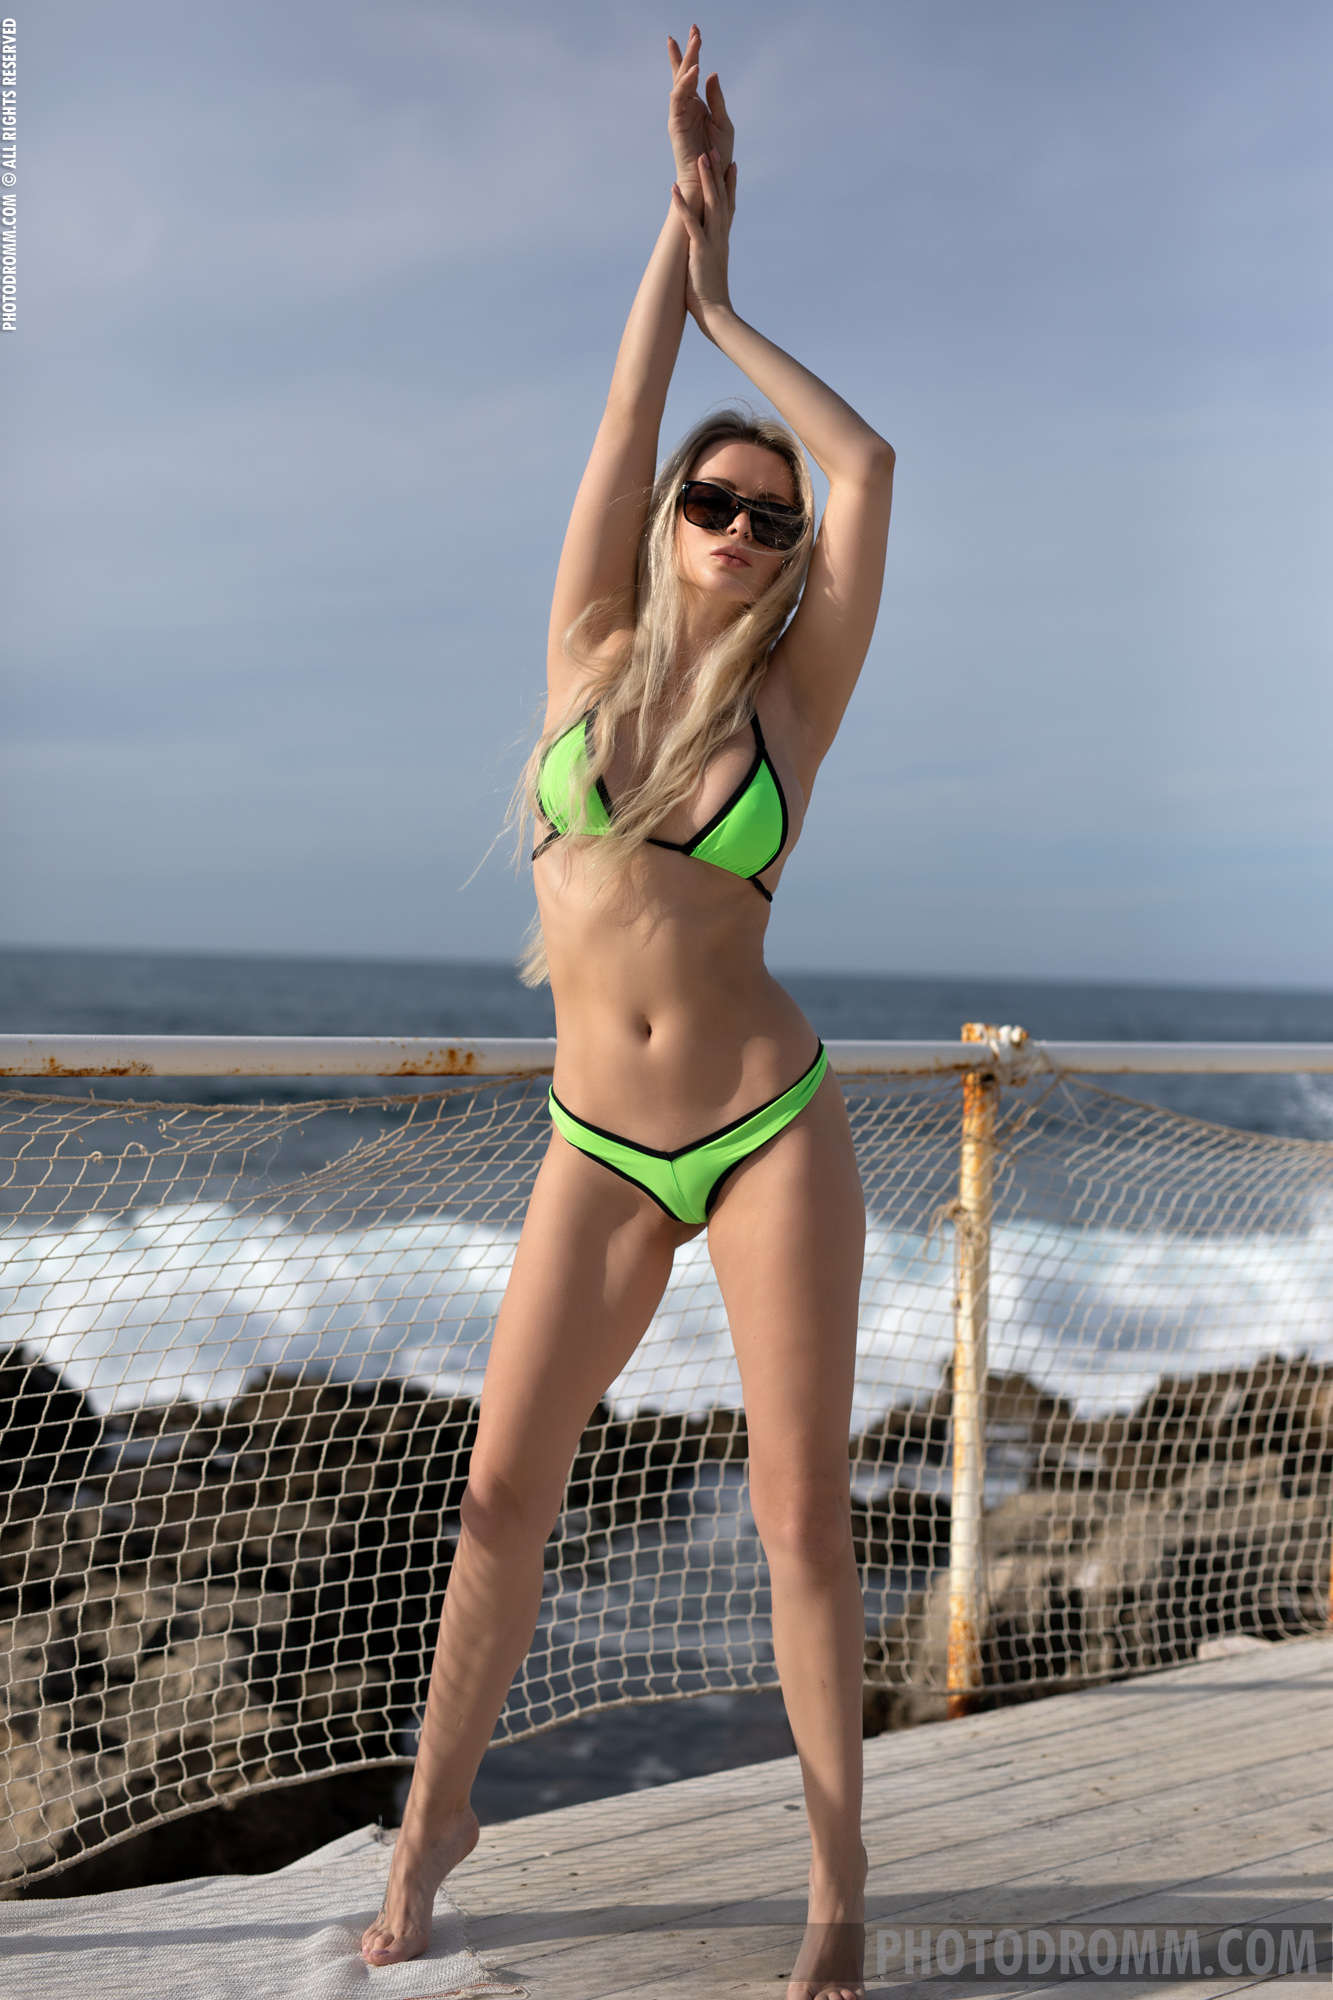 Katya Big Tit Blonde in Flourescent Green Bikini for Photodromm